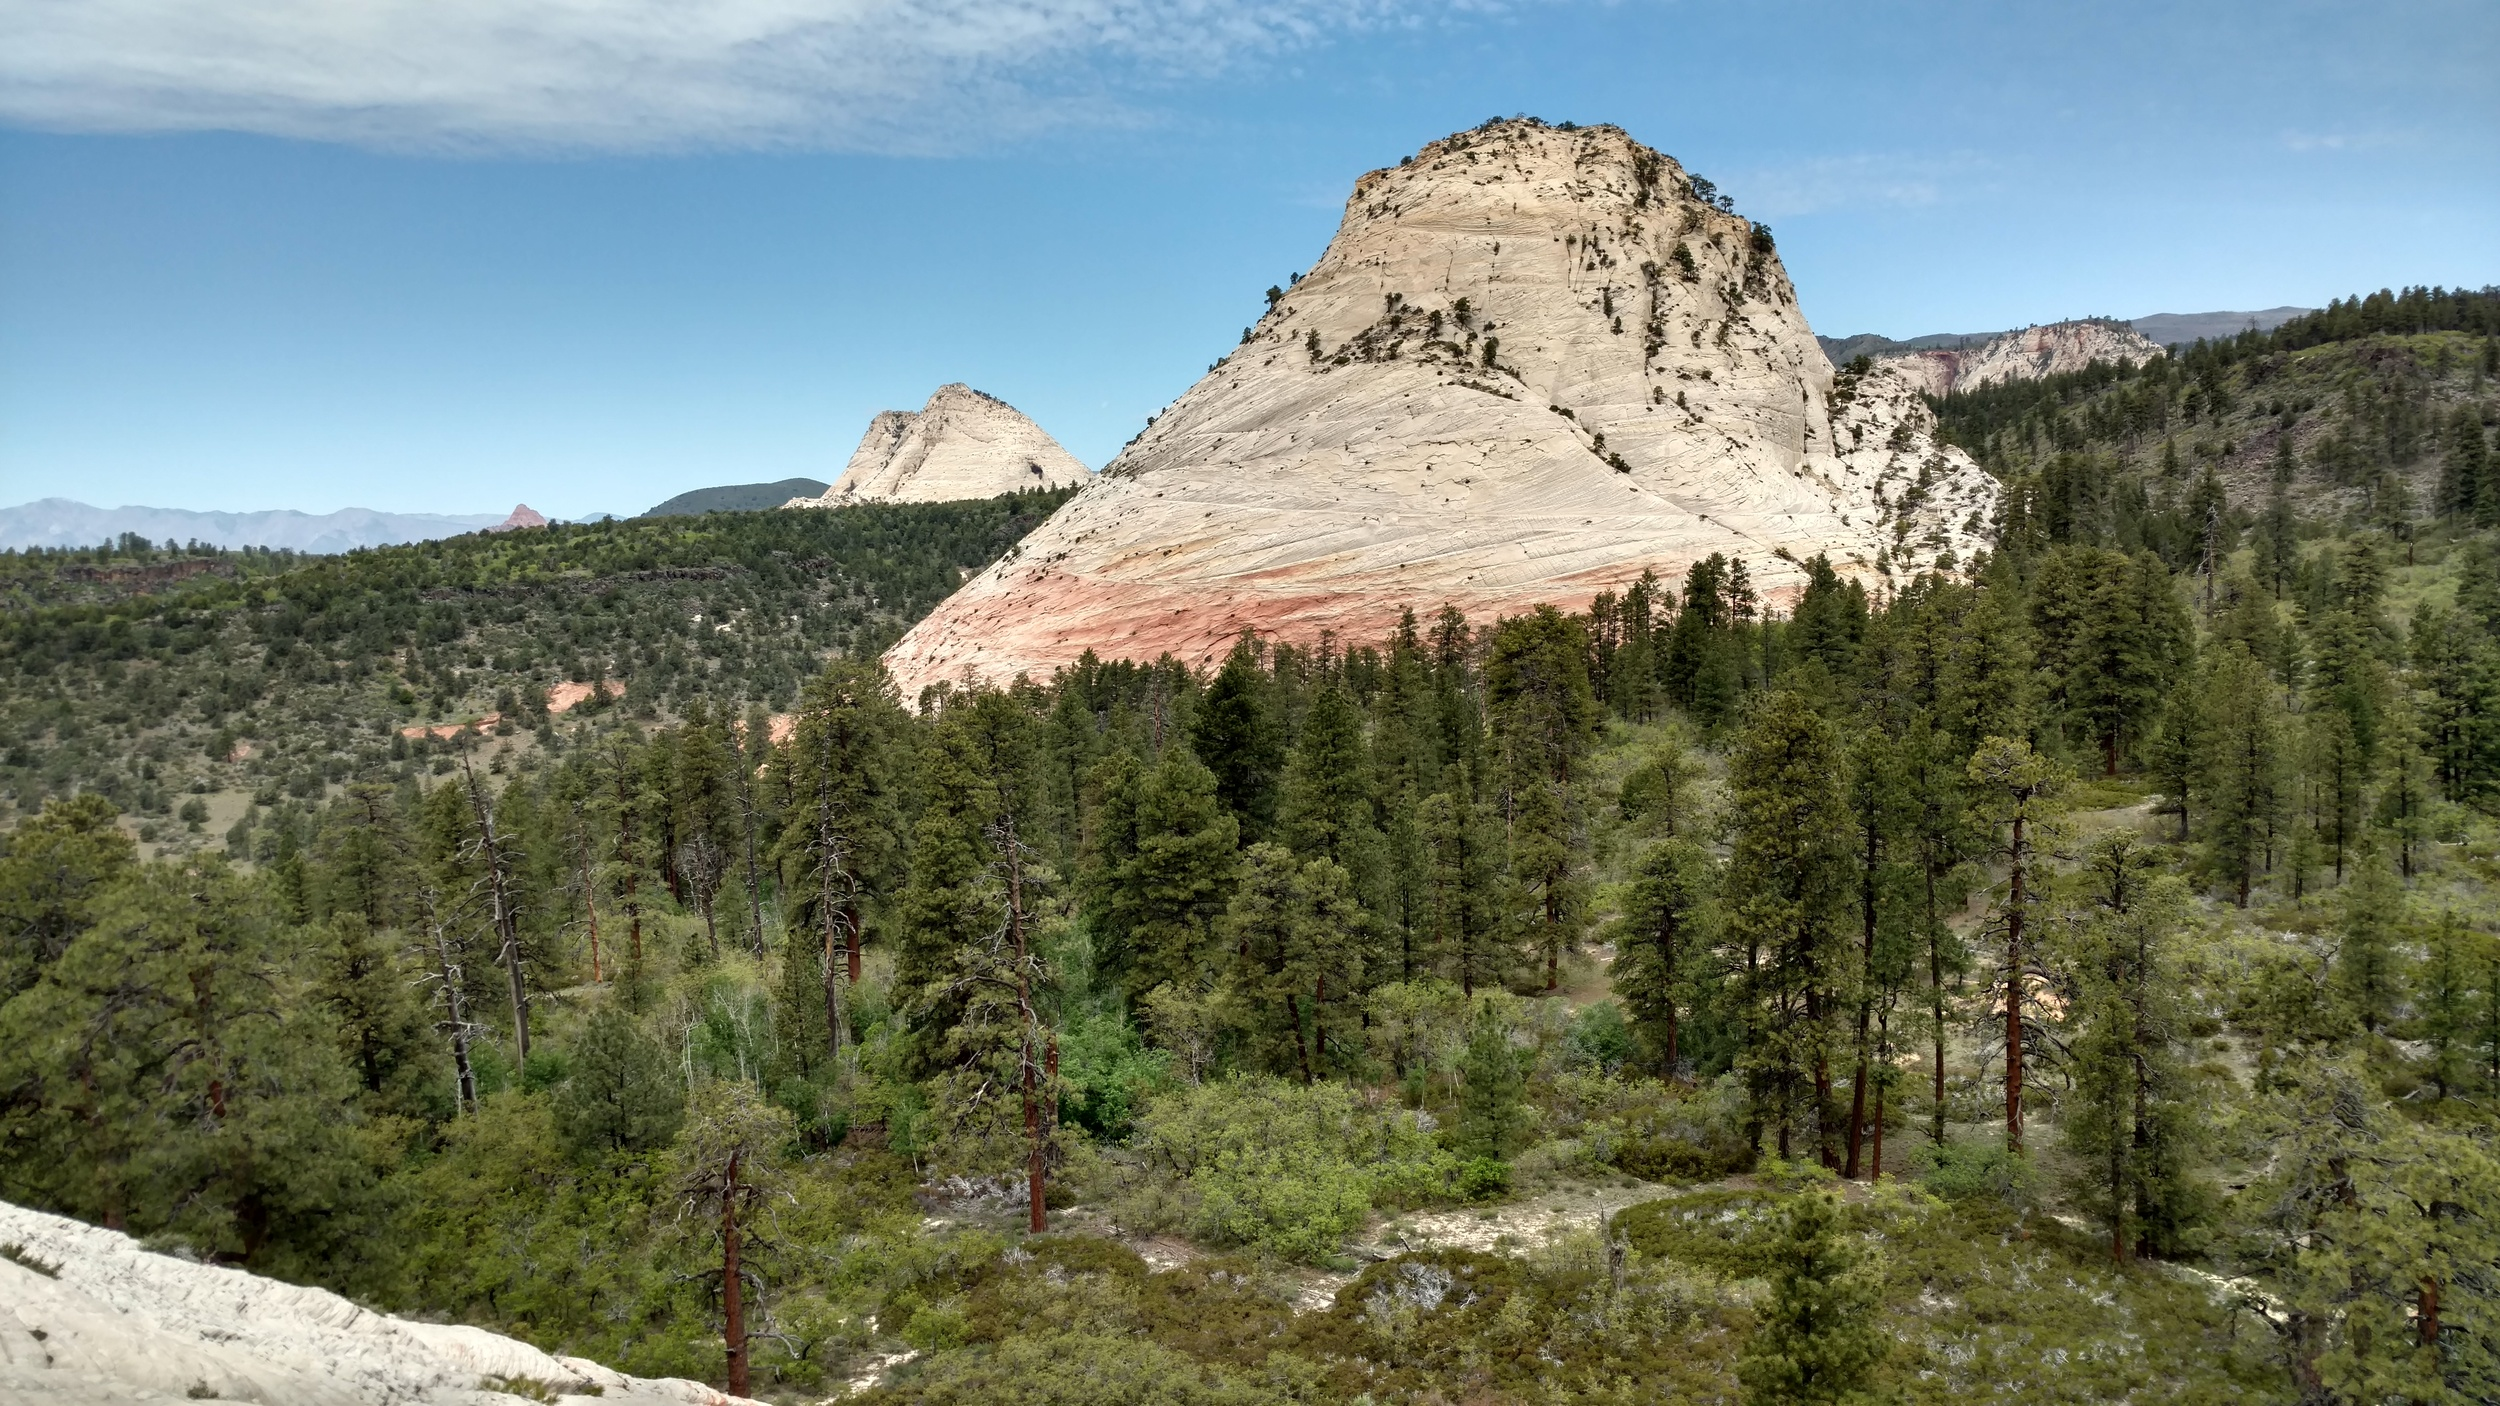 Northgate Peaks West with Pine Valley Peak in the distance.